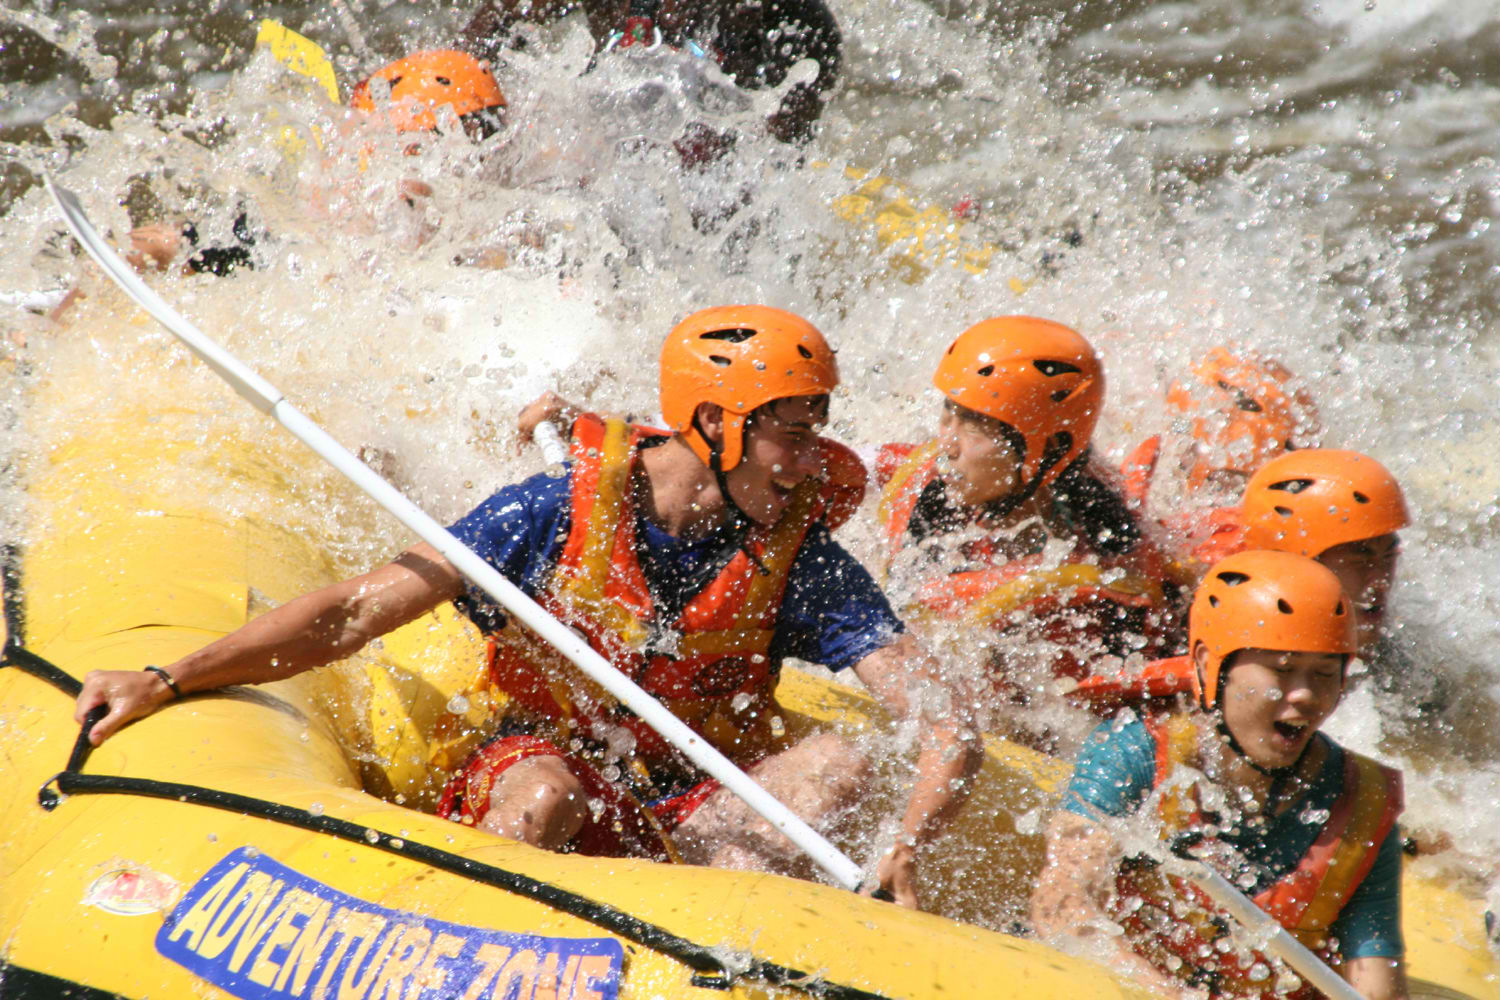 Adventure Zone Victoria Falls will start rafting again 27th May 2012. Check out afrikanblues.com blog for more details.